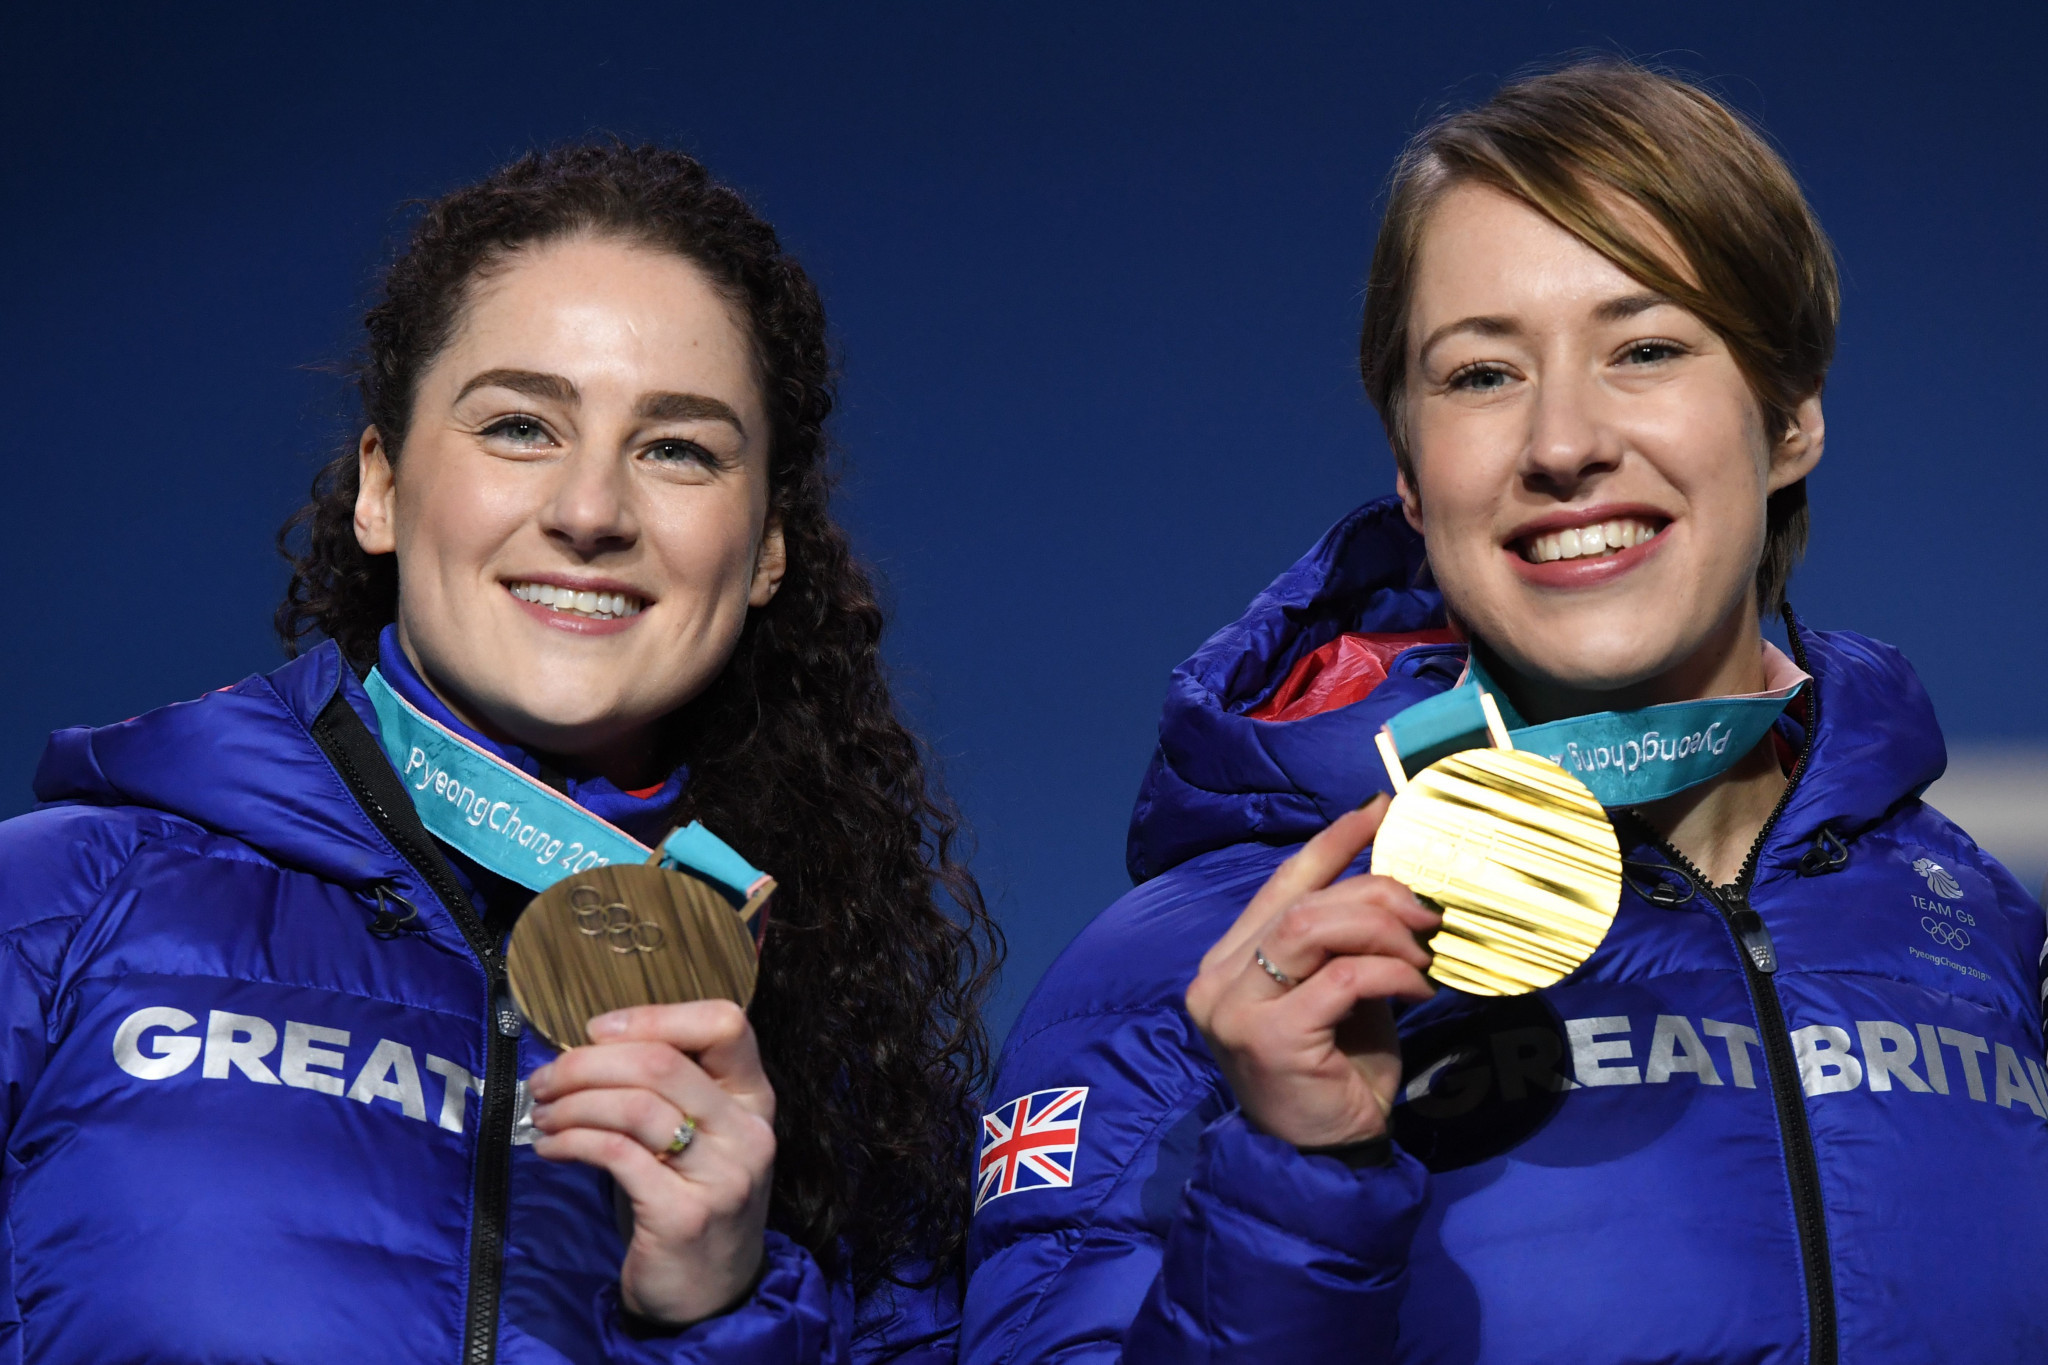 Lizzie Yarnold, right, and Laura Deas clinched gold and bronze respectively in the women's skeleton at Pyeongchang 2018 ©Getty Images